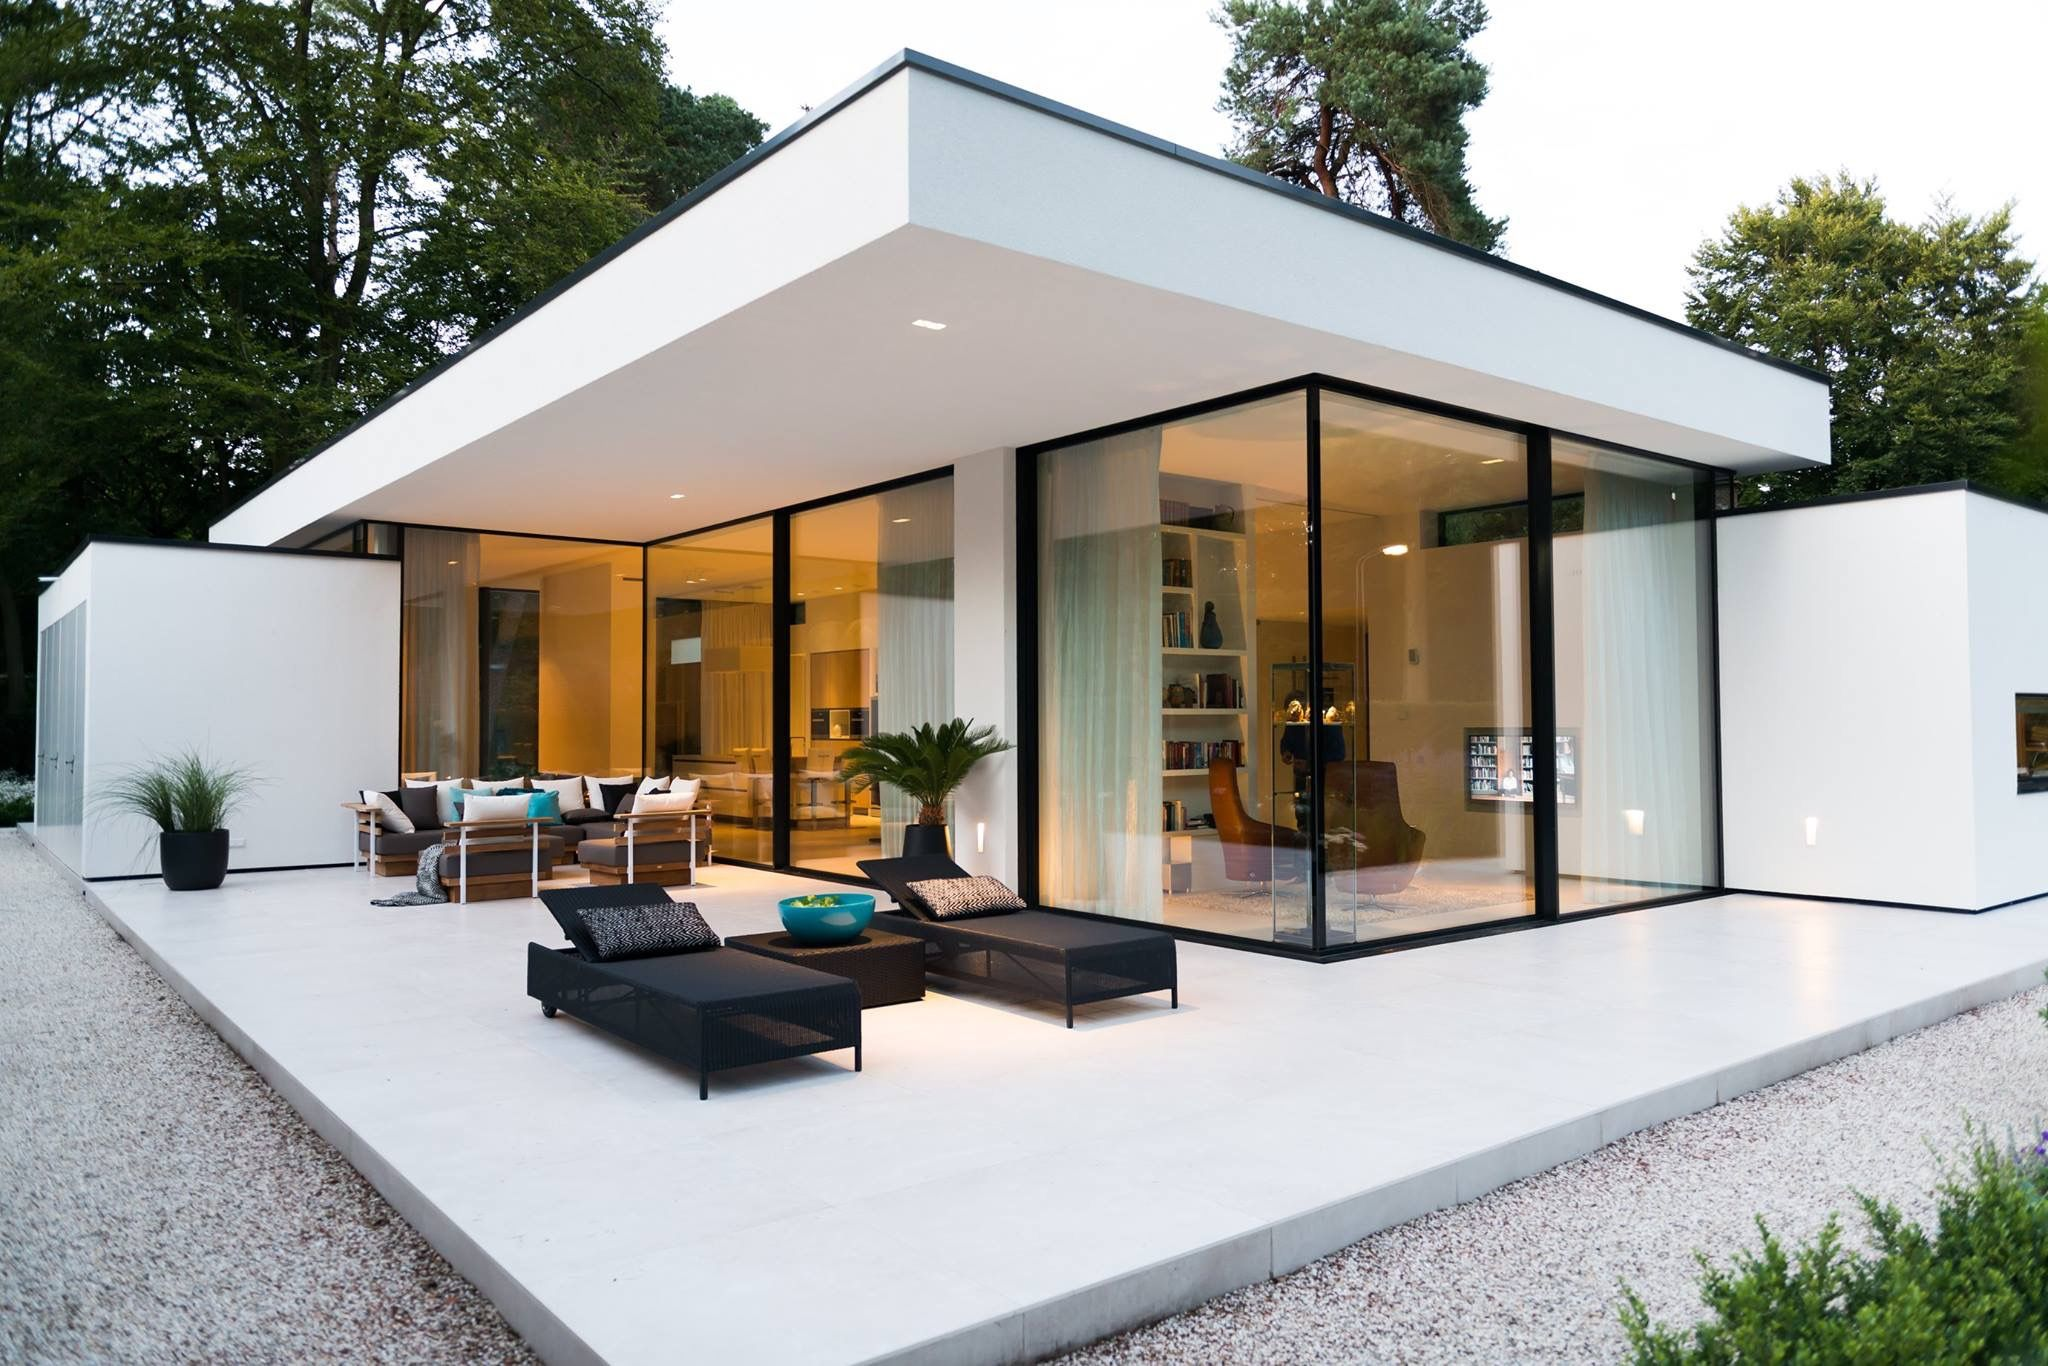 Black and white modern ceiling to floor glass design outdoor lounge on veranda